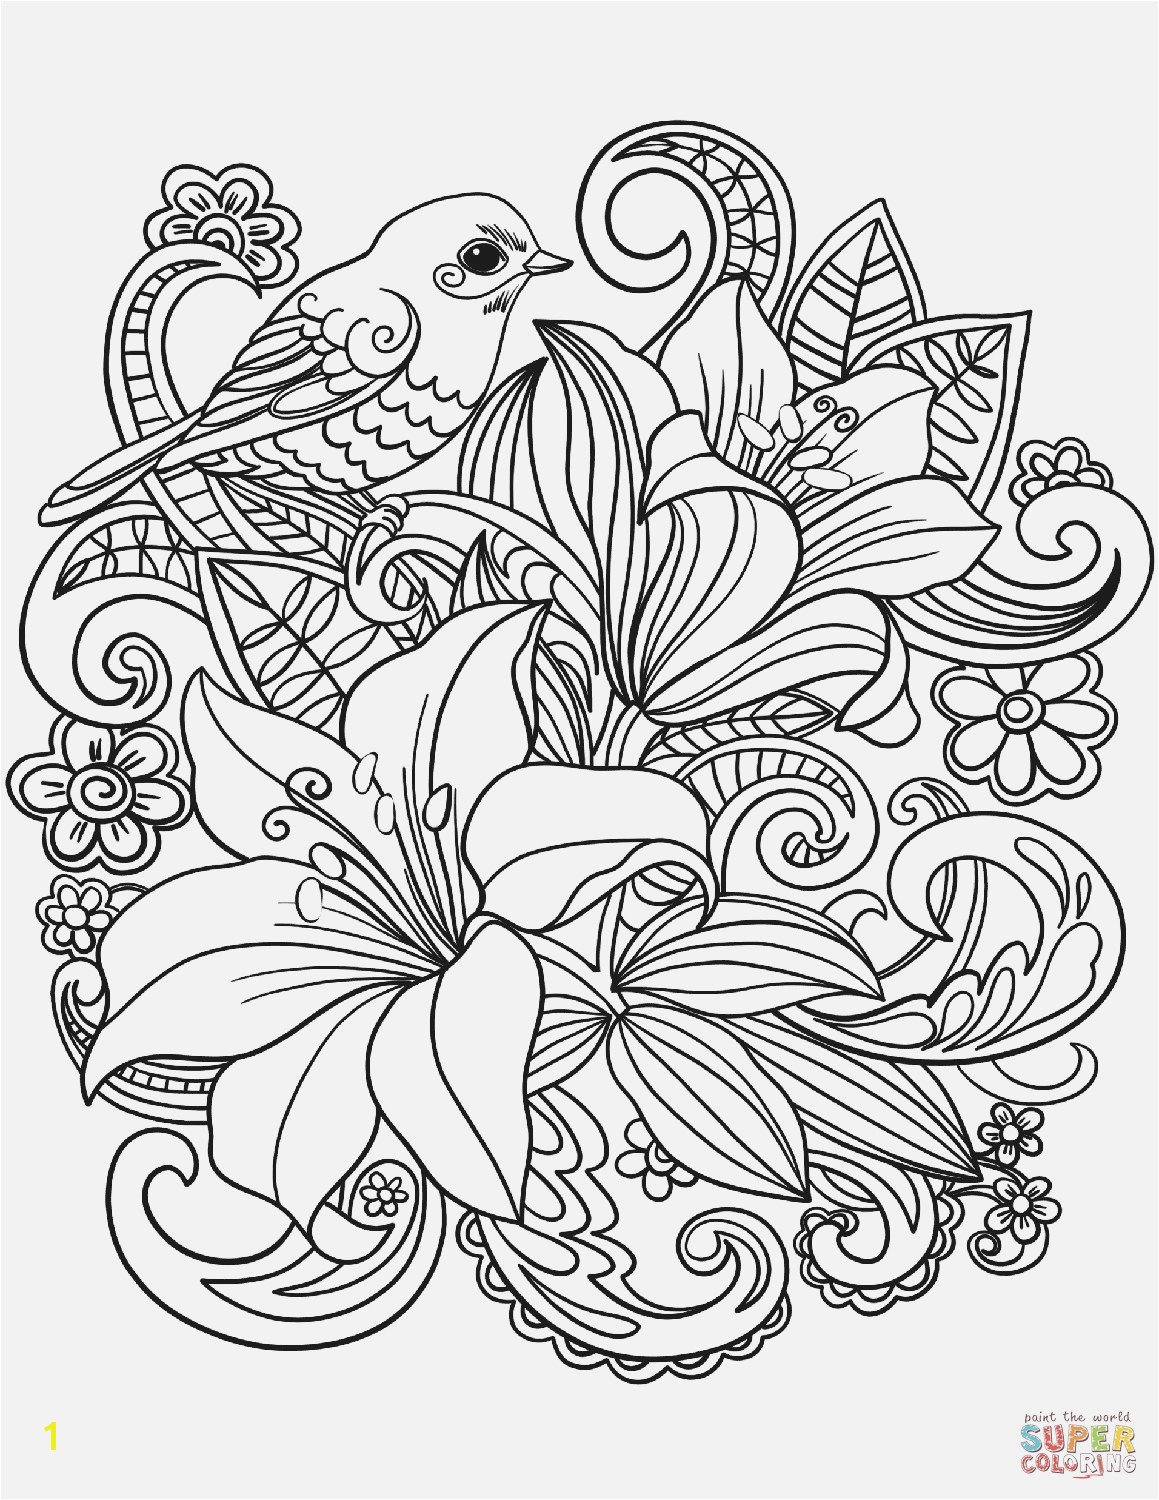 Free Flower Coloring Pages Printable Cool Vases Flower Vase Coloring Page Pages Flowers In A top I 0d